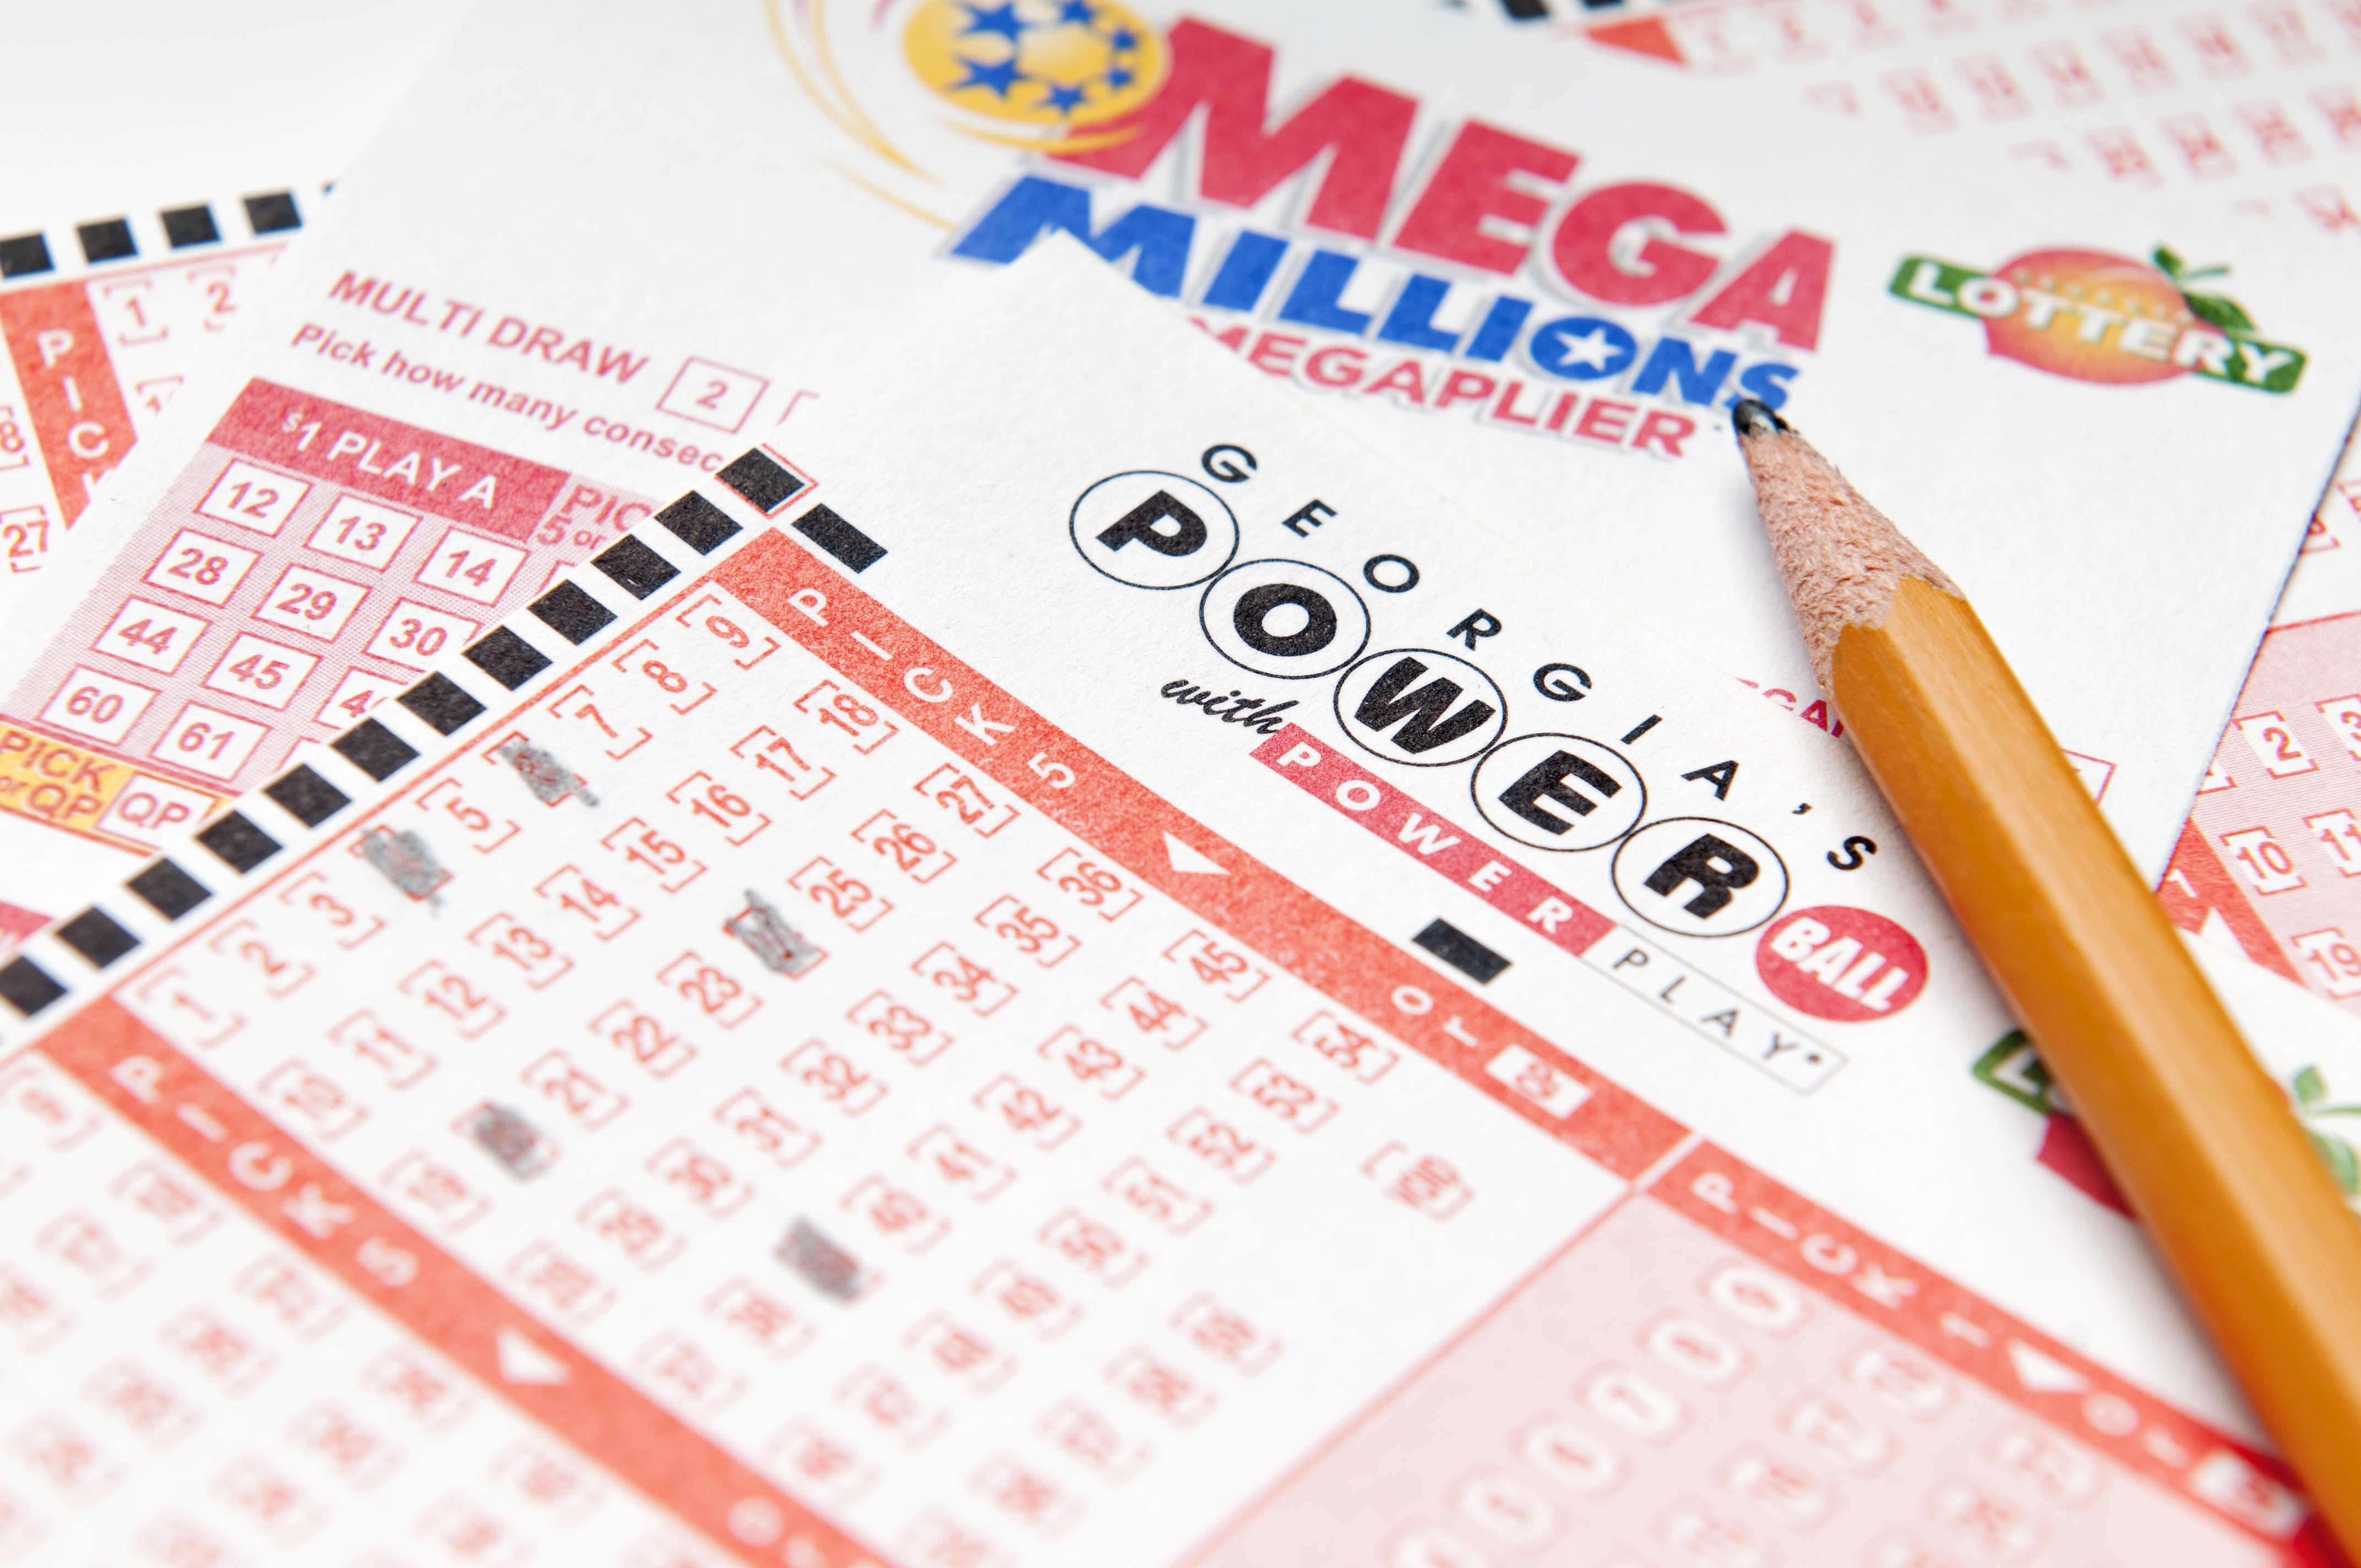 Mega Millions jackpot jumps to $432 million. Here's what to do if you win